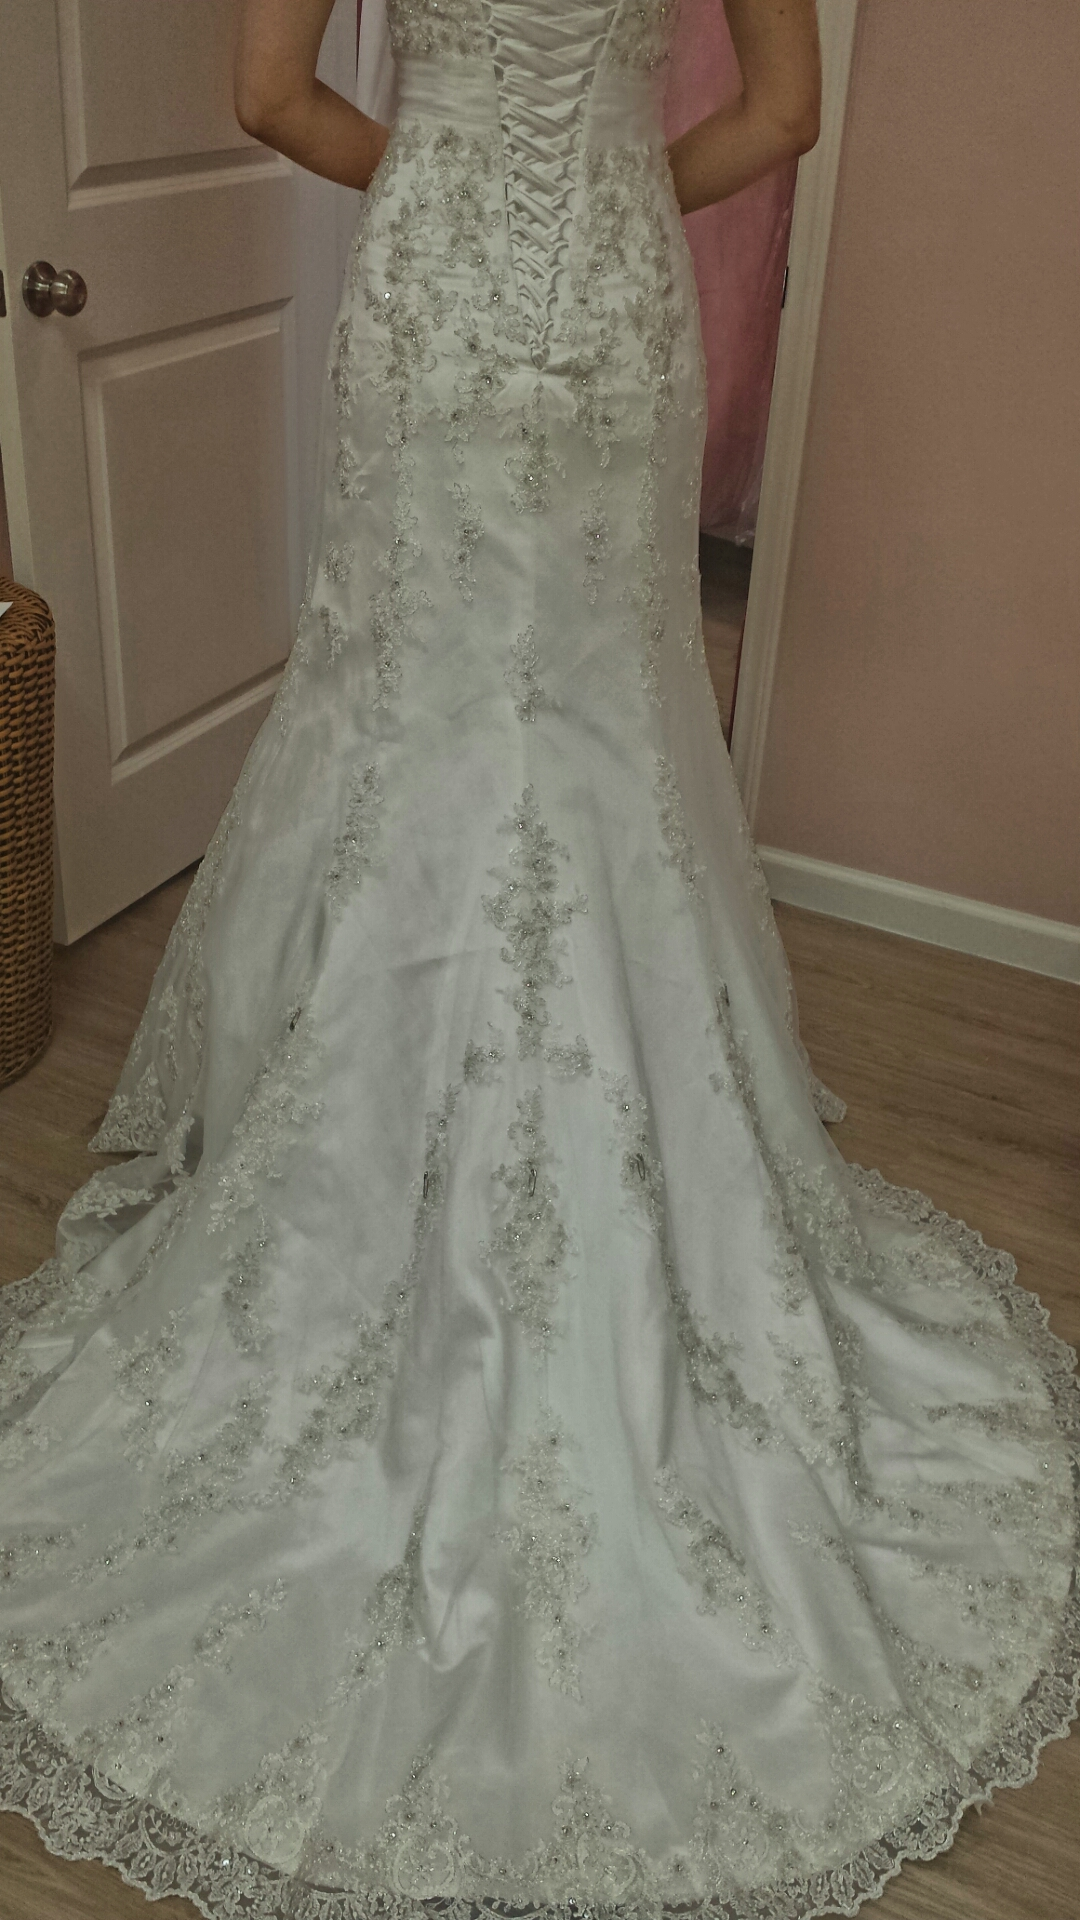 Show me your mermaid Bustle — The Knot